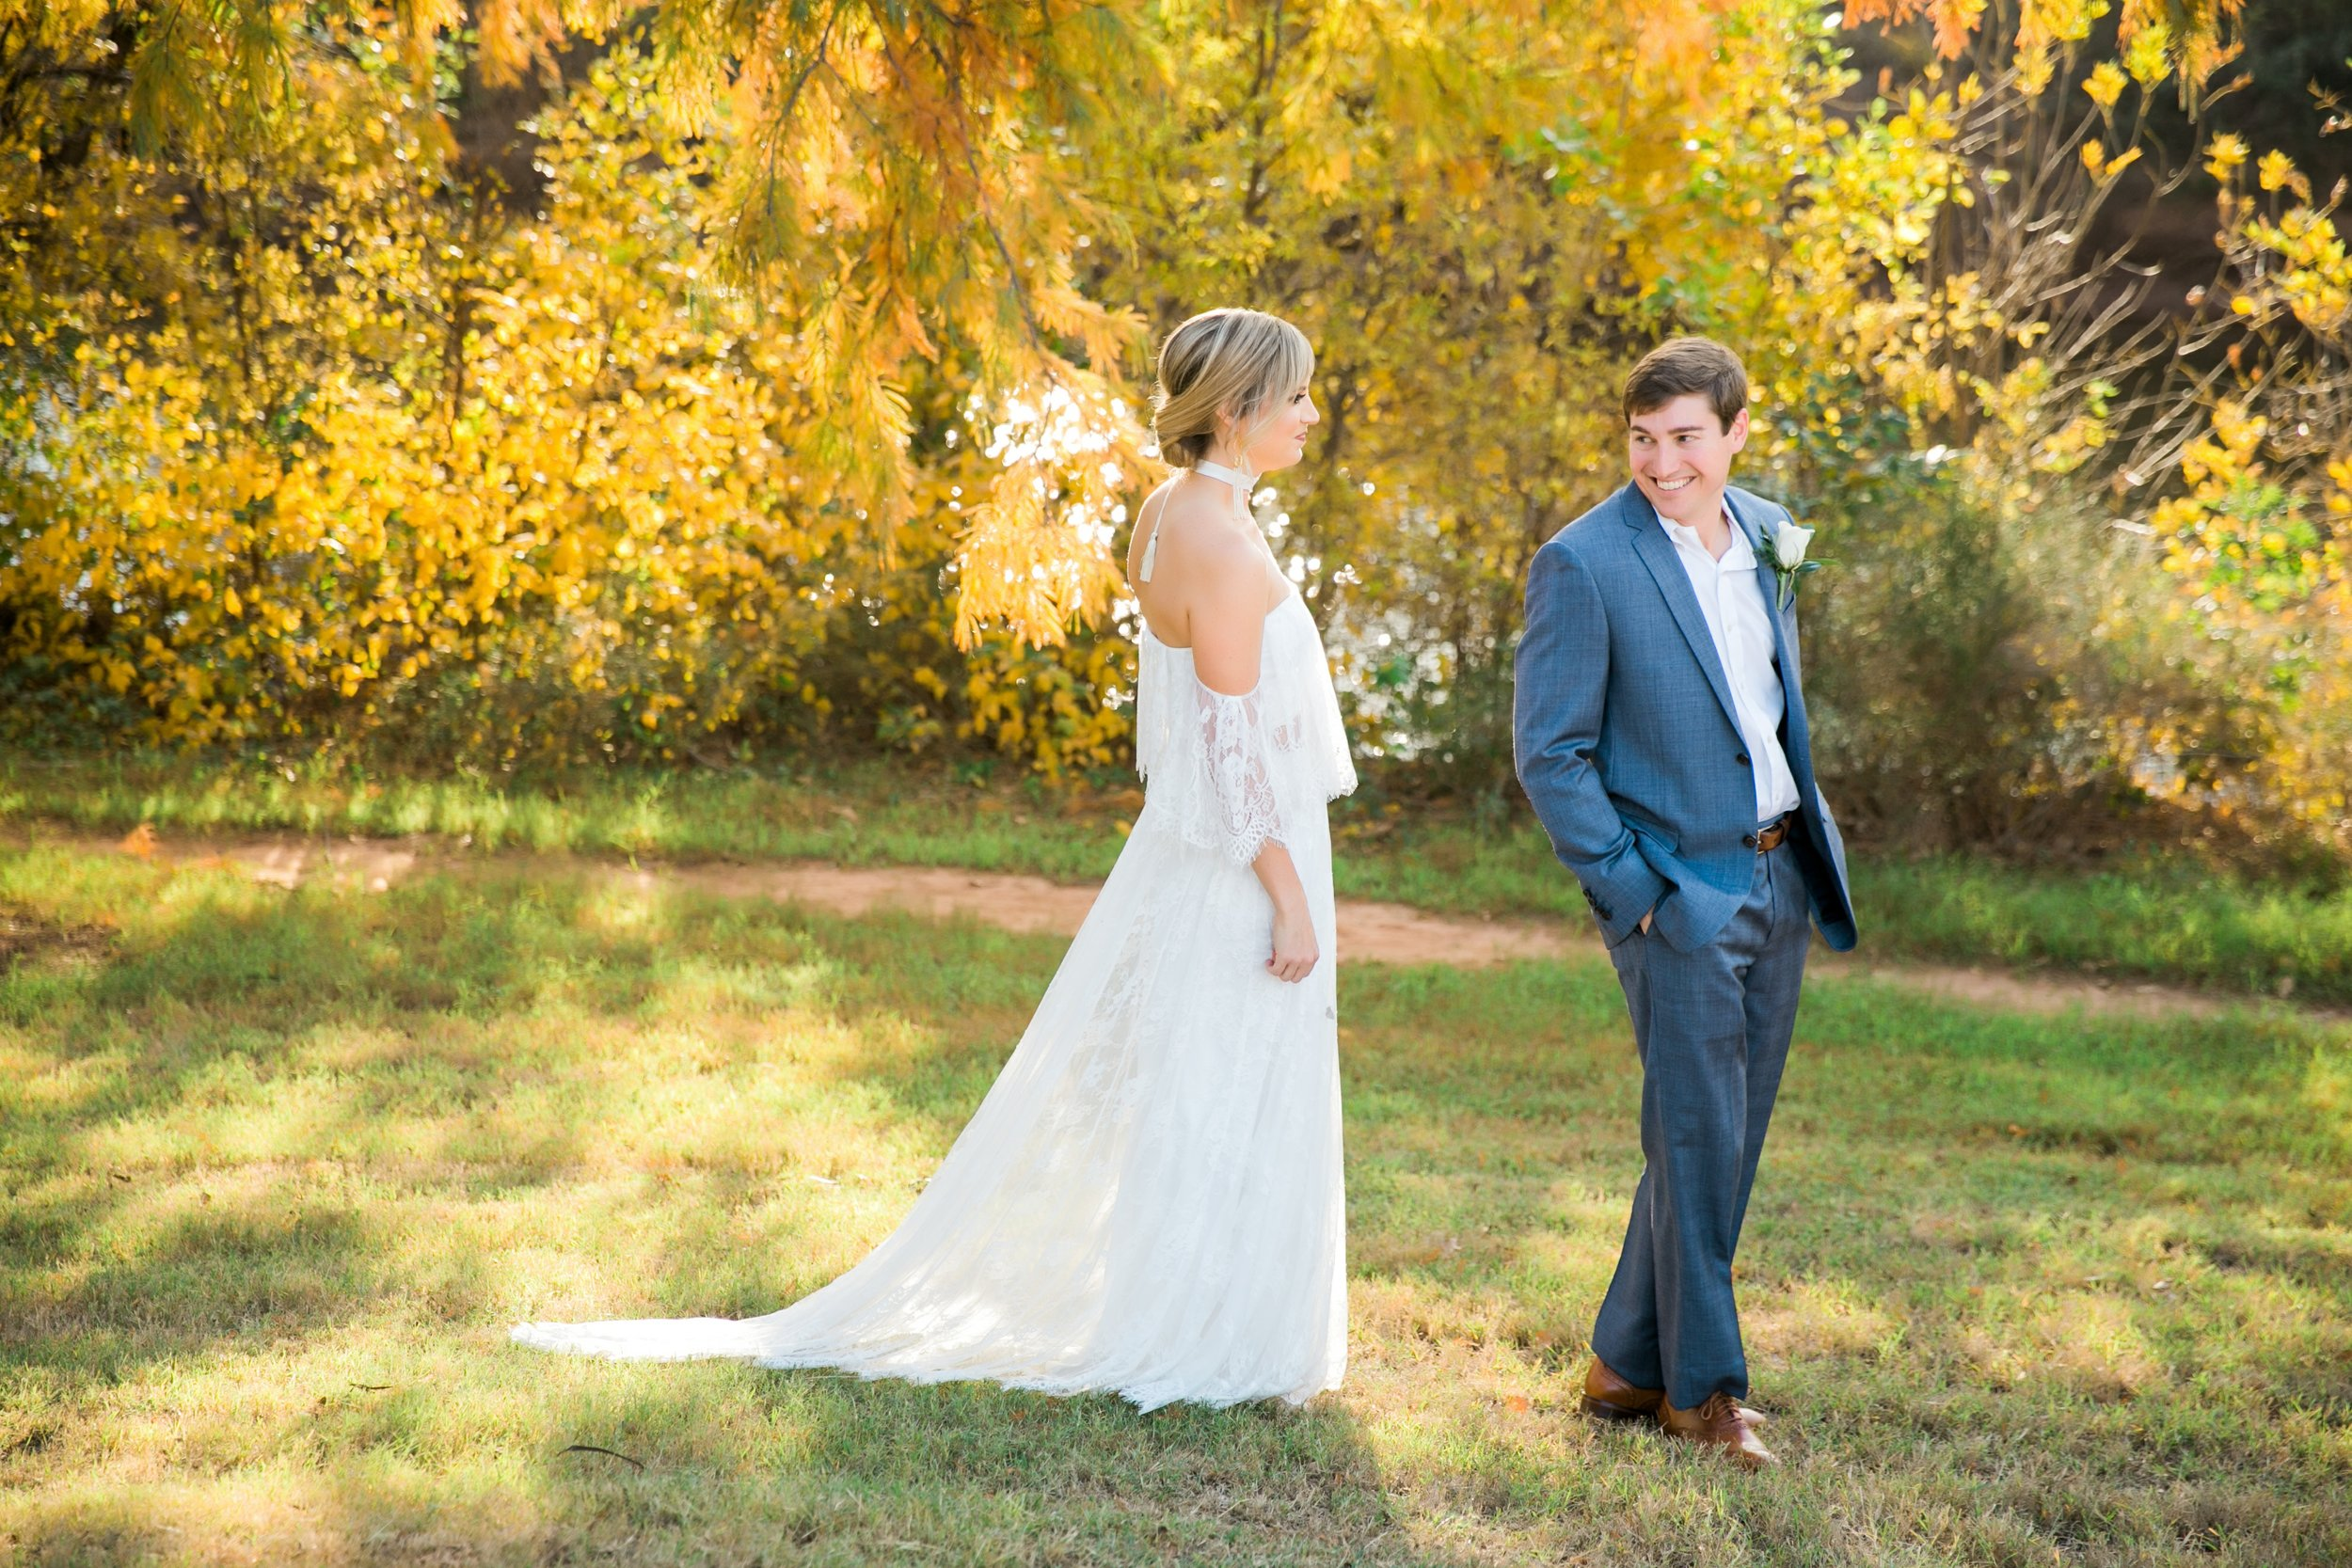 Magan-Landon-Surprise-wedding-at-southern-jeweled-warehouse-wichita-falls-texas-lauren-pinson-013.jpg